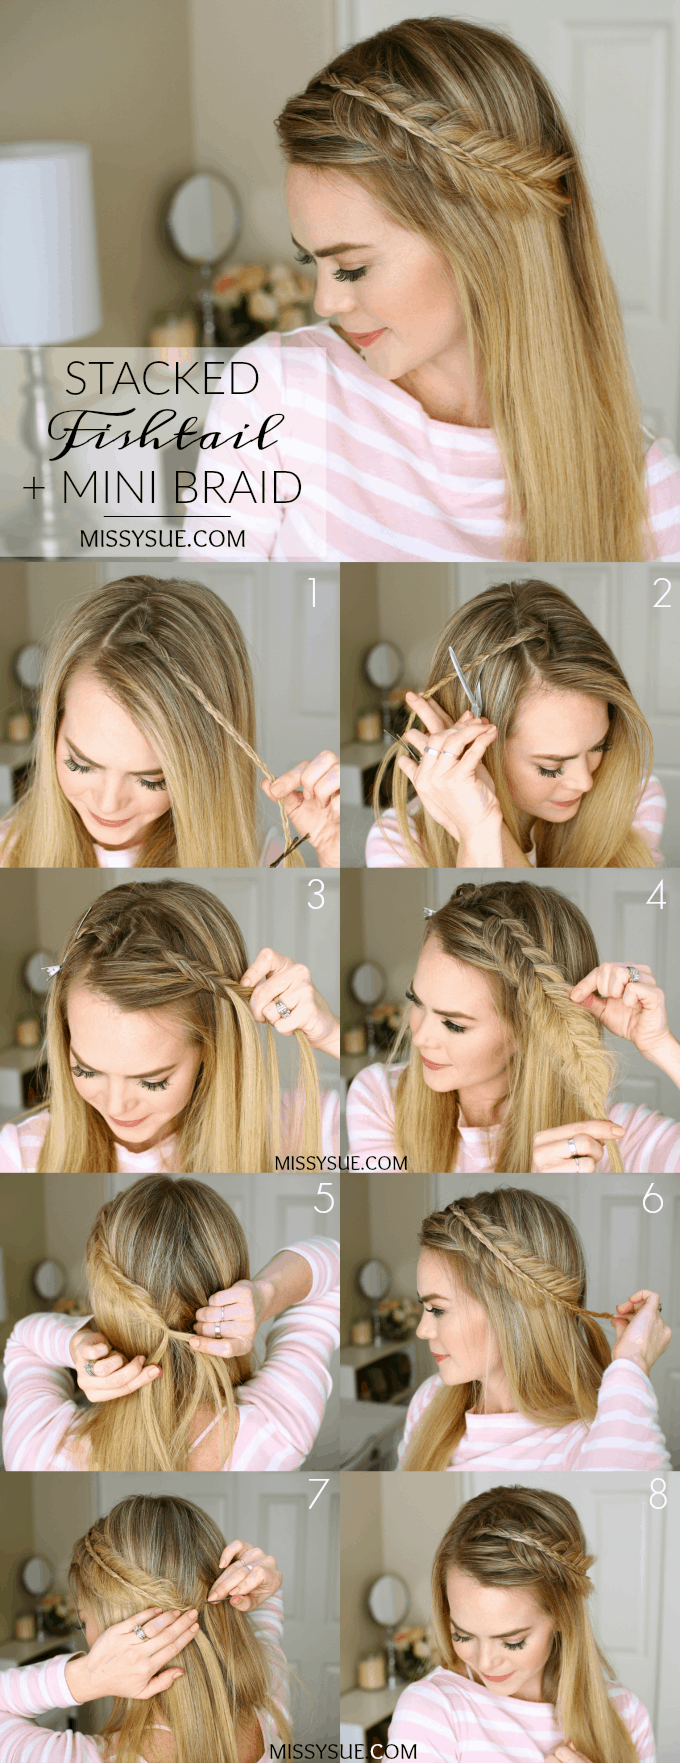 Outstanding 10 Easy Braided Hairstyles For A Party Live Better Lifestyle Natural Hairstyles Runnerswayorg